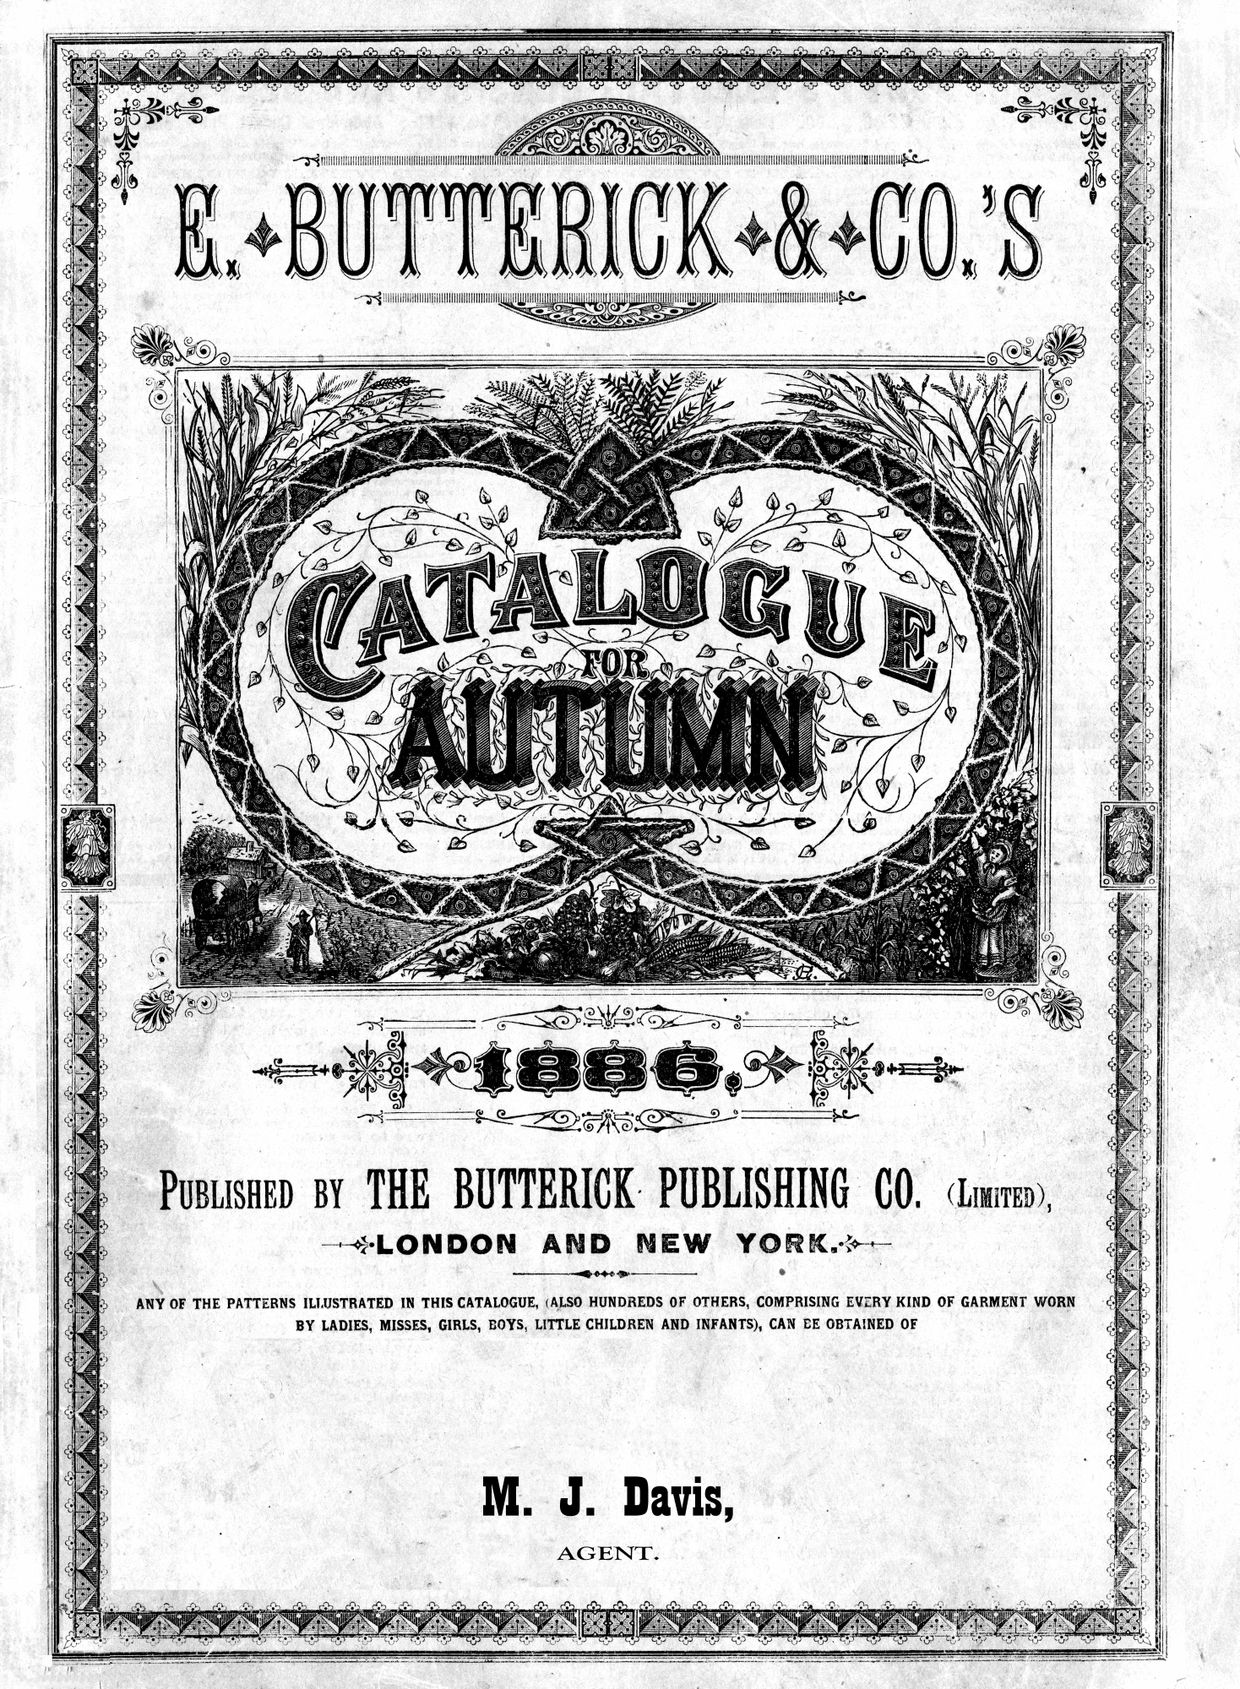 1886 pattern catalog reprint